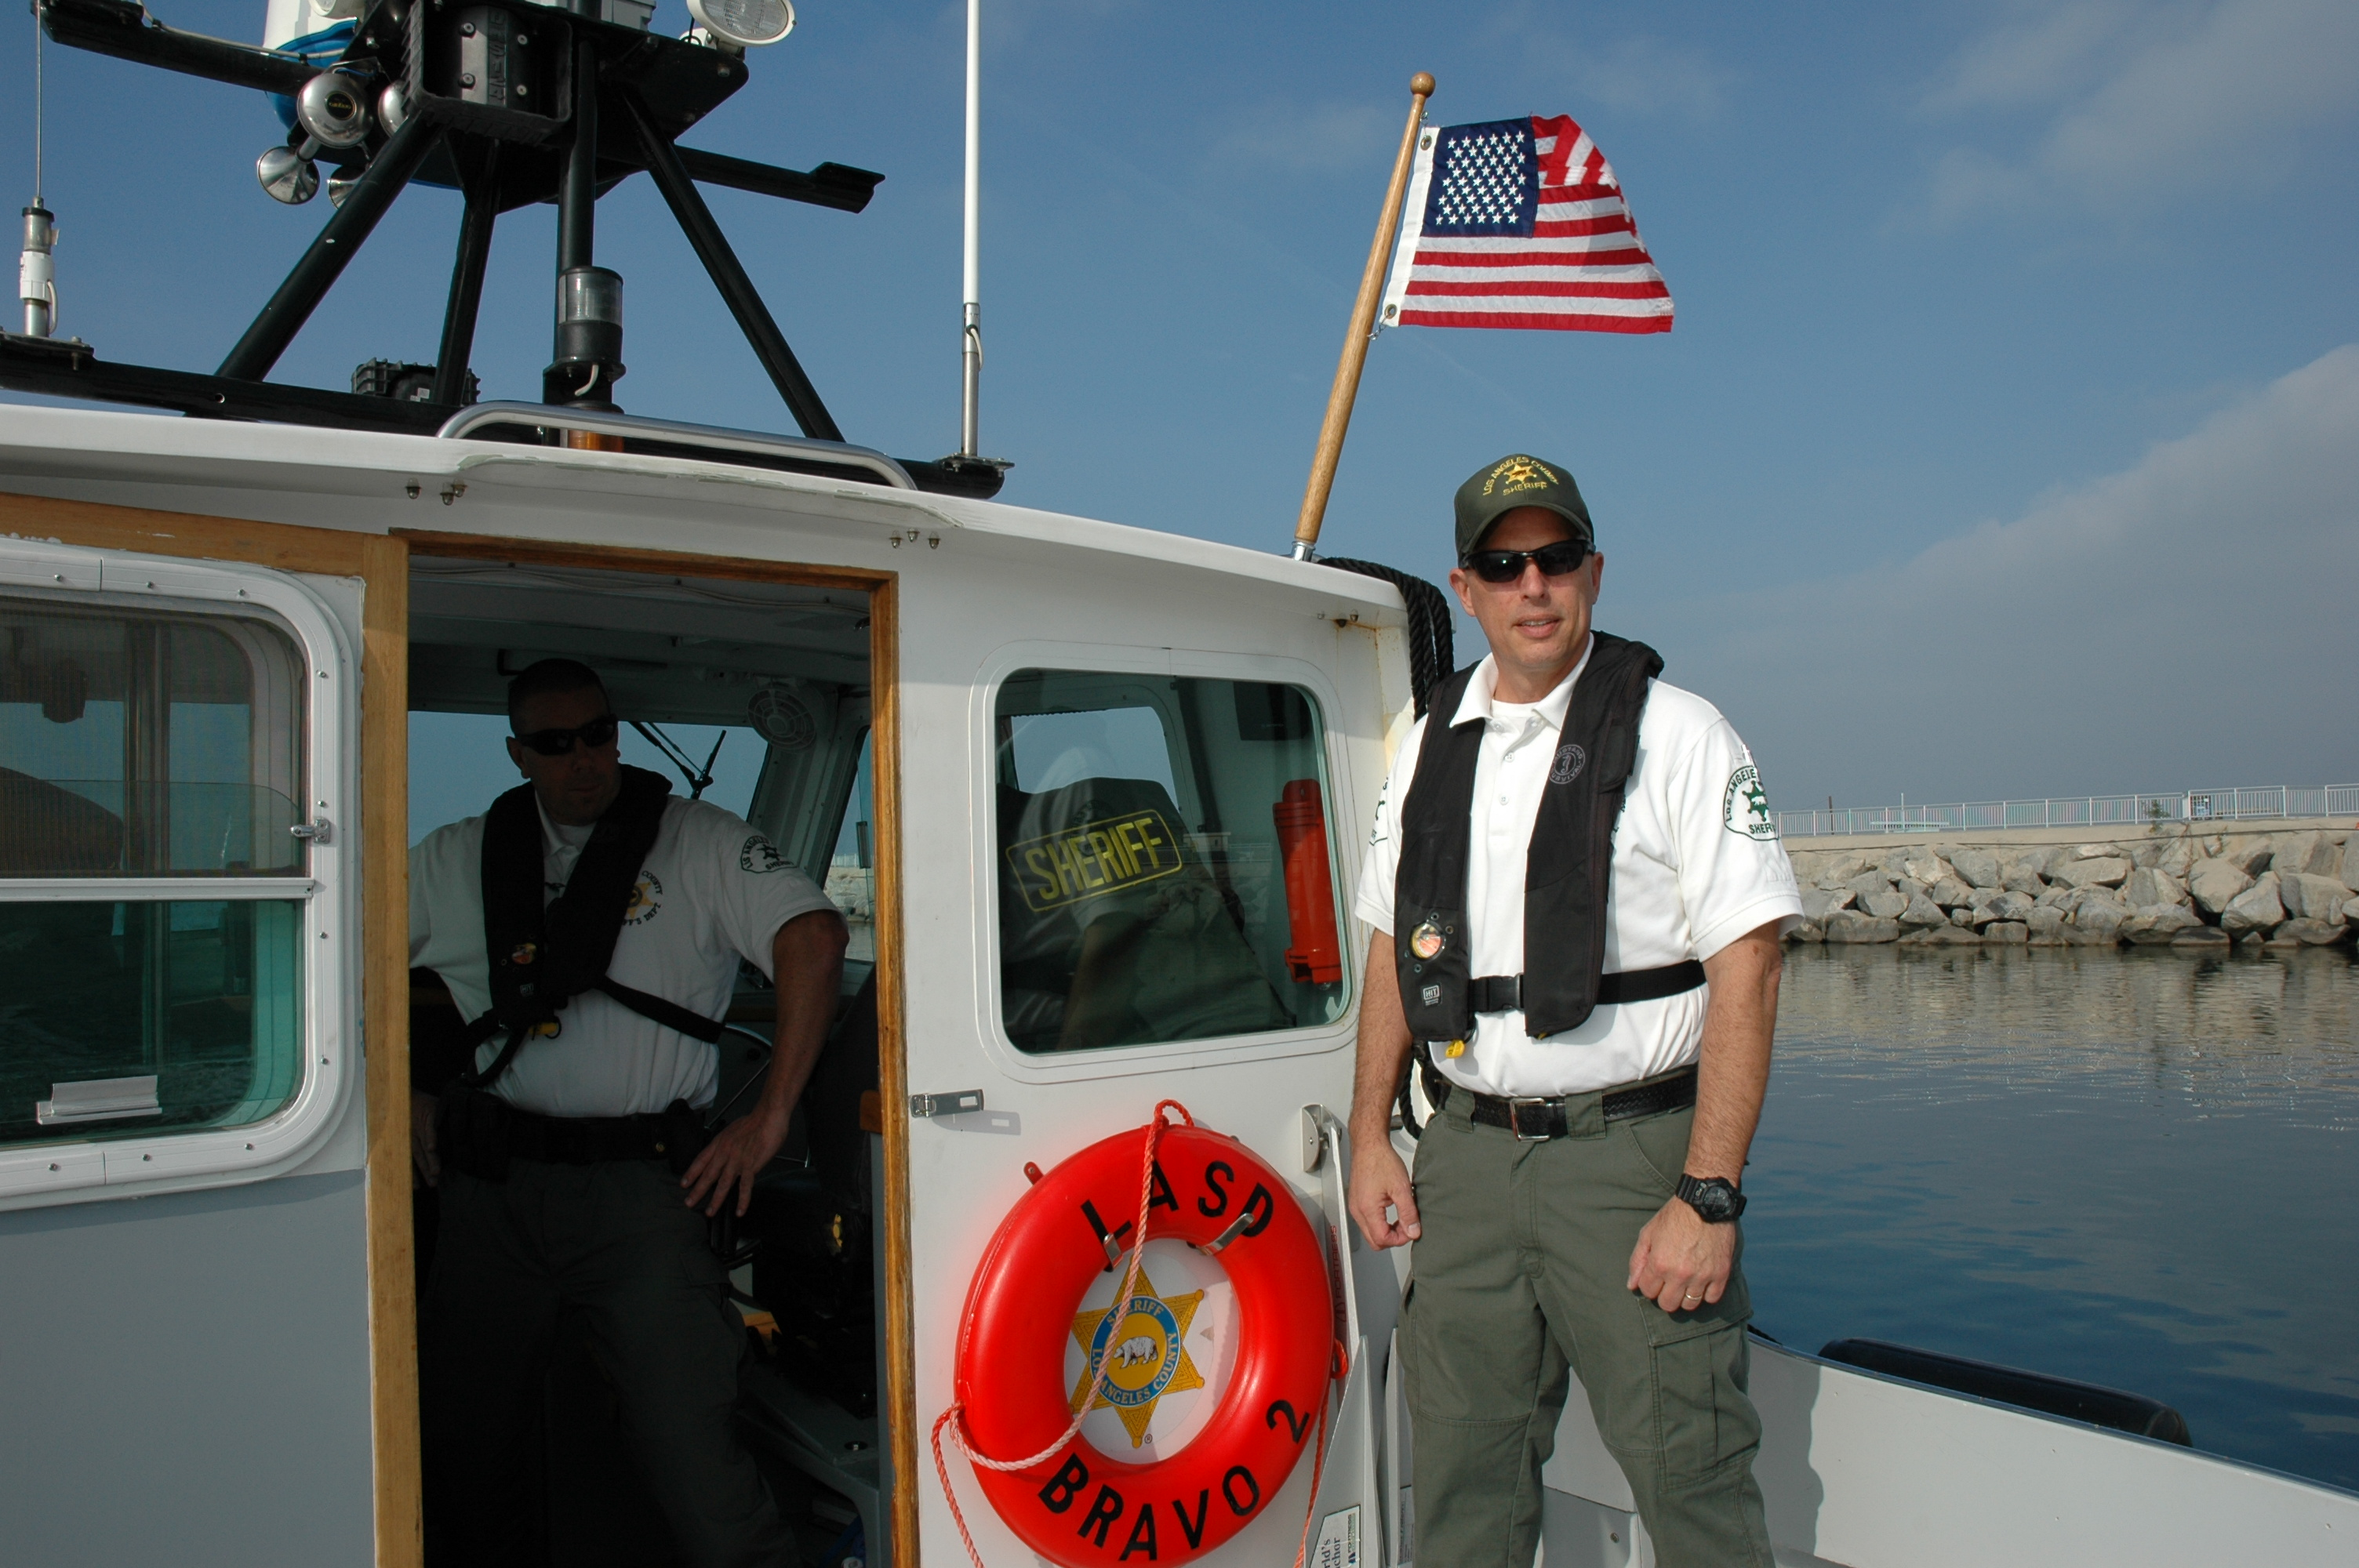 8 Questions with Deputy Bryan White